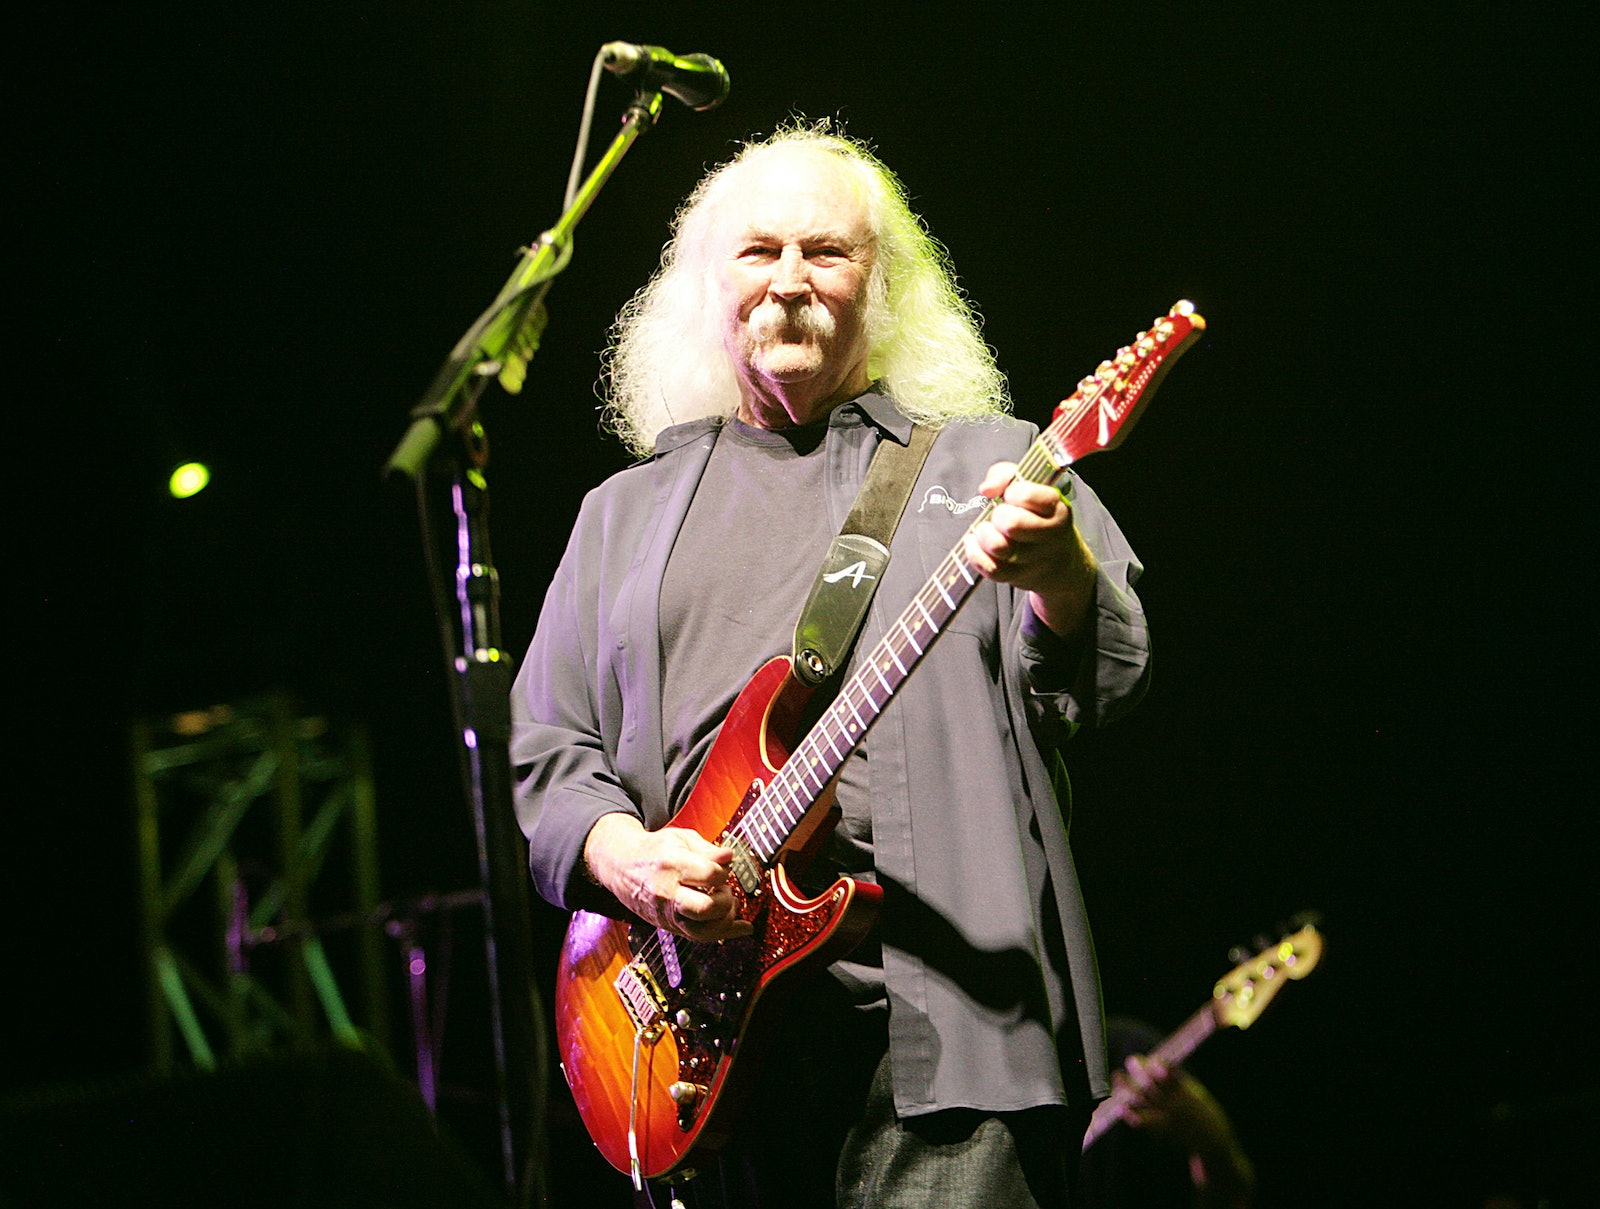 David Crosby - David Crosby from Crosby, Stills and Nash at the Byron Bay Blues and Roots festival in year 2012??